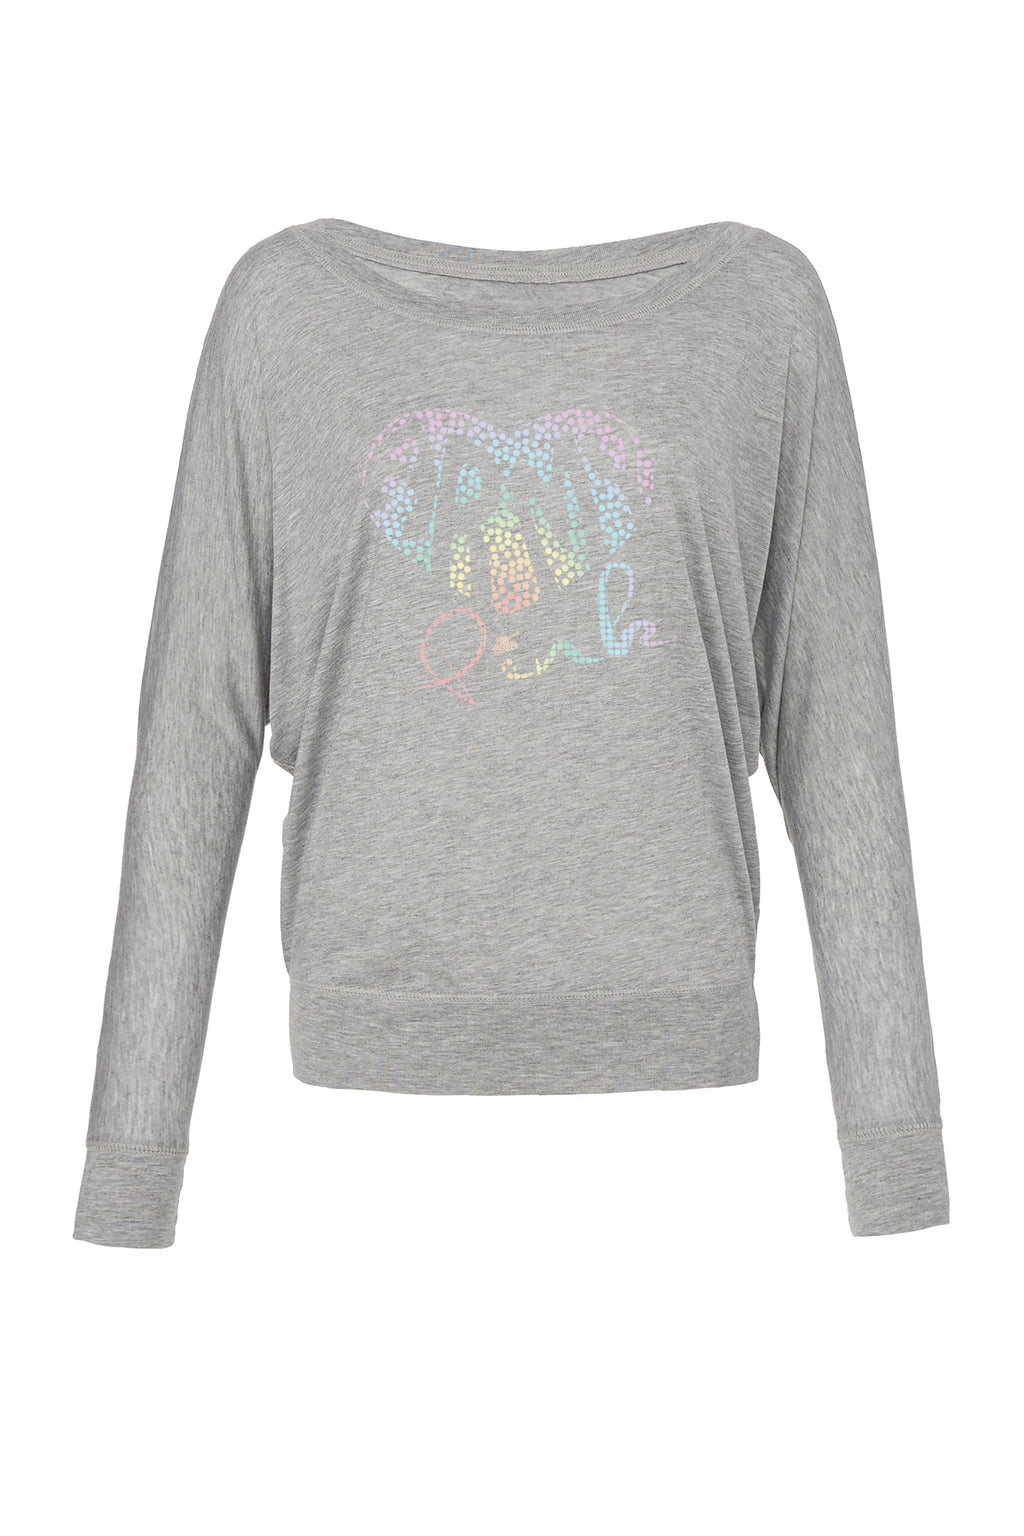 Athletic Heather Graphic Long Sleeve: Pastel Dotted Heart for 42.00 at ARMY PINK